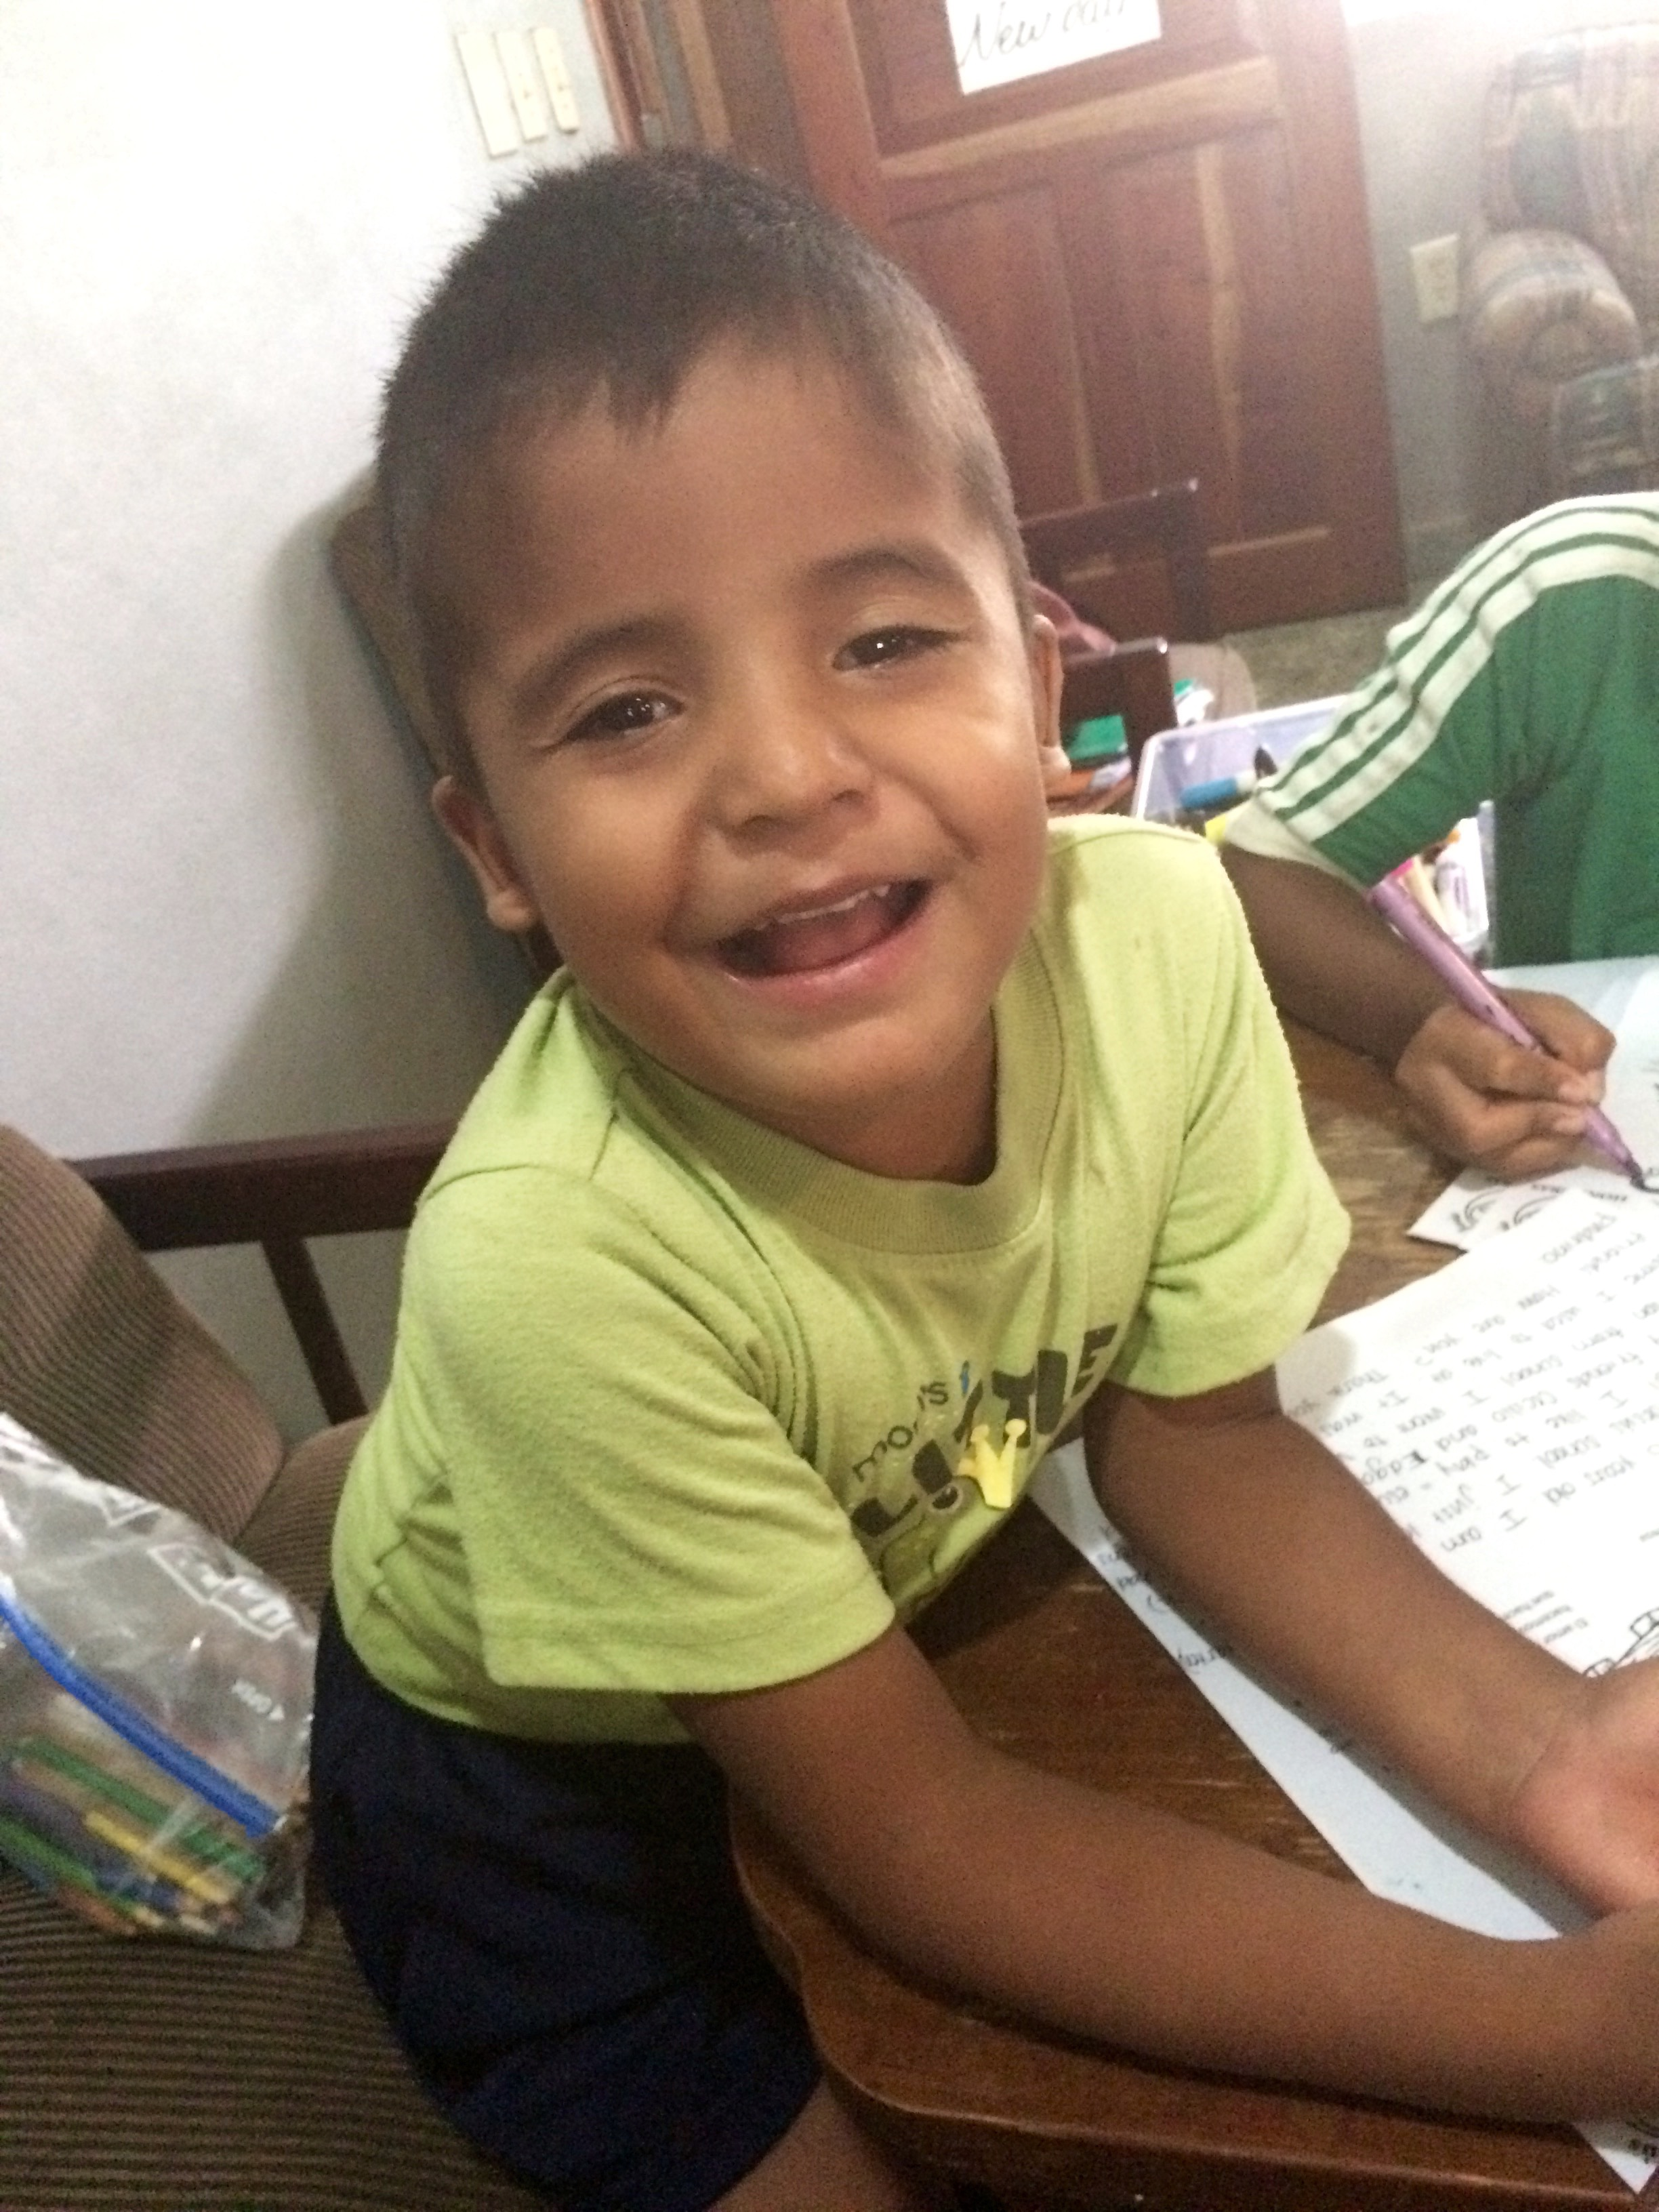 Isaac while writing letters to his sponsors in the U.S.